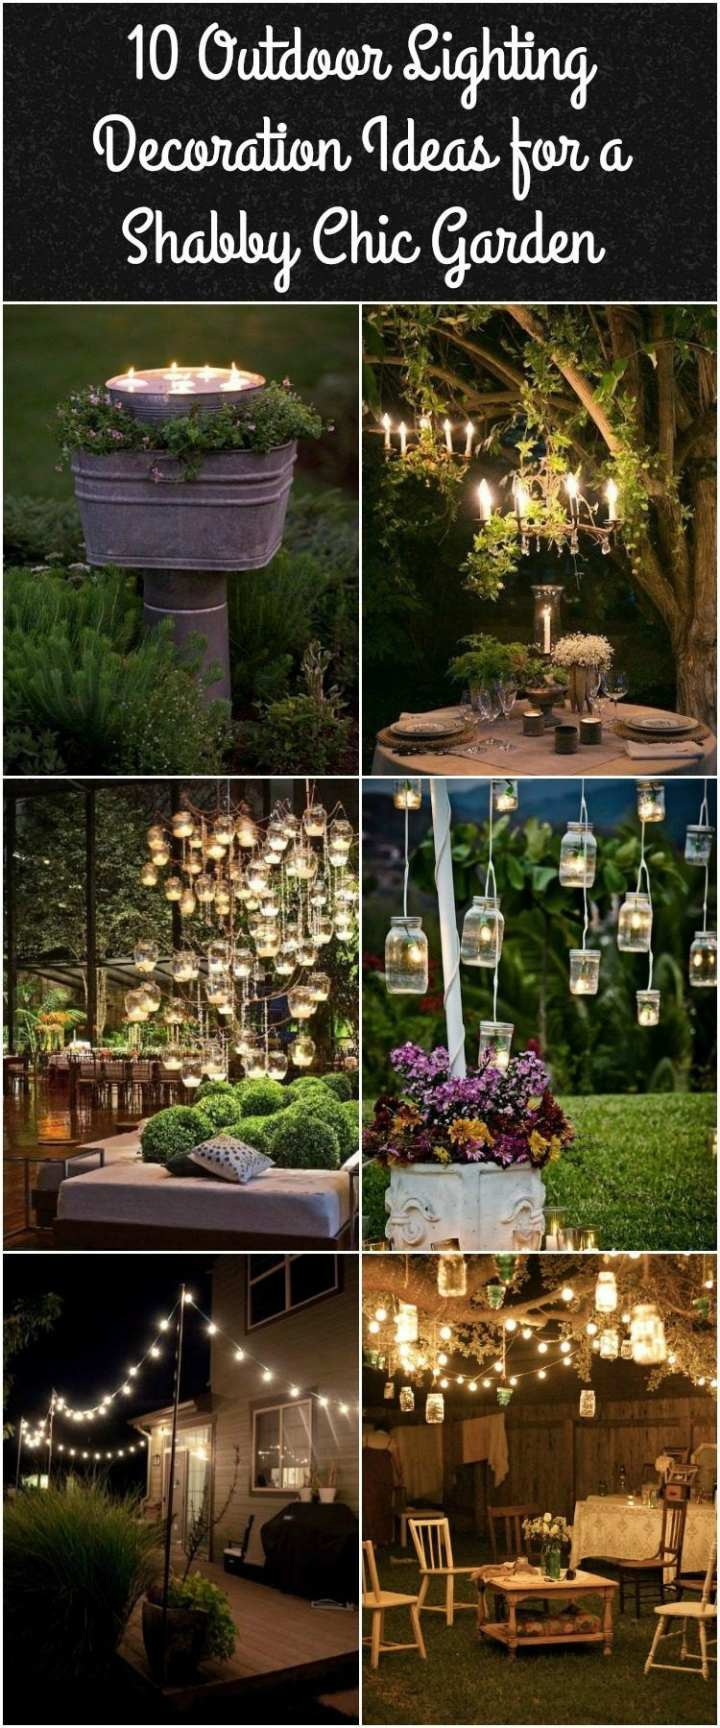 walmart decorative vases of decorative outdoor solar lights unique outdoor solar patio lights with decorative outdoor solar lights awesome 20 outdoor lighting ideas for a shabby chic garden 6 is